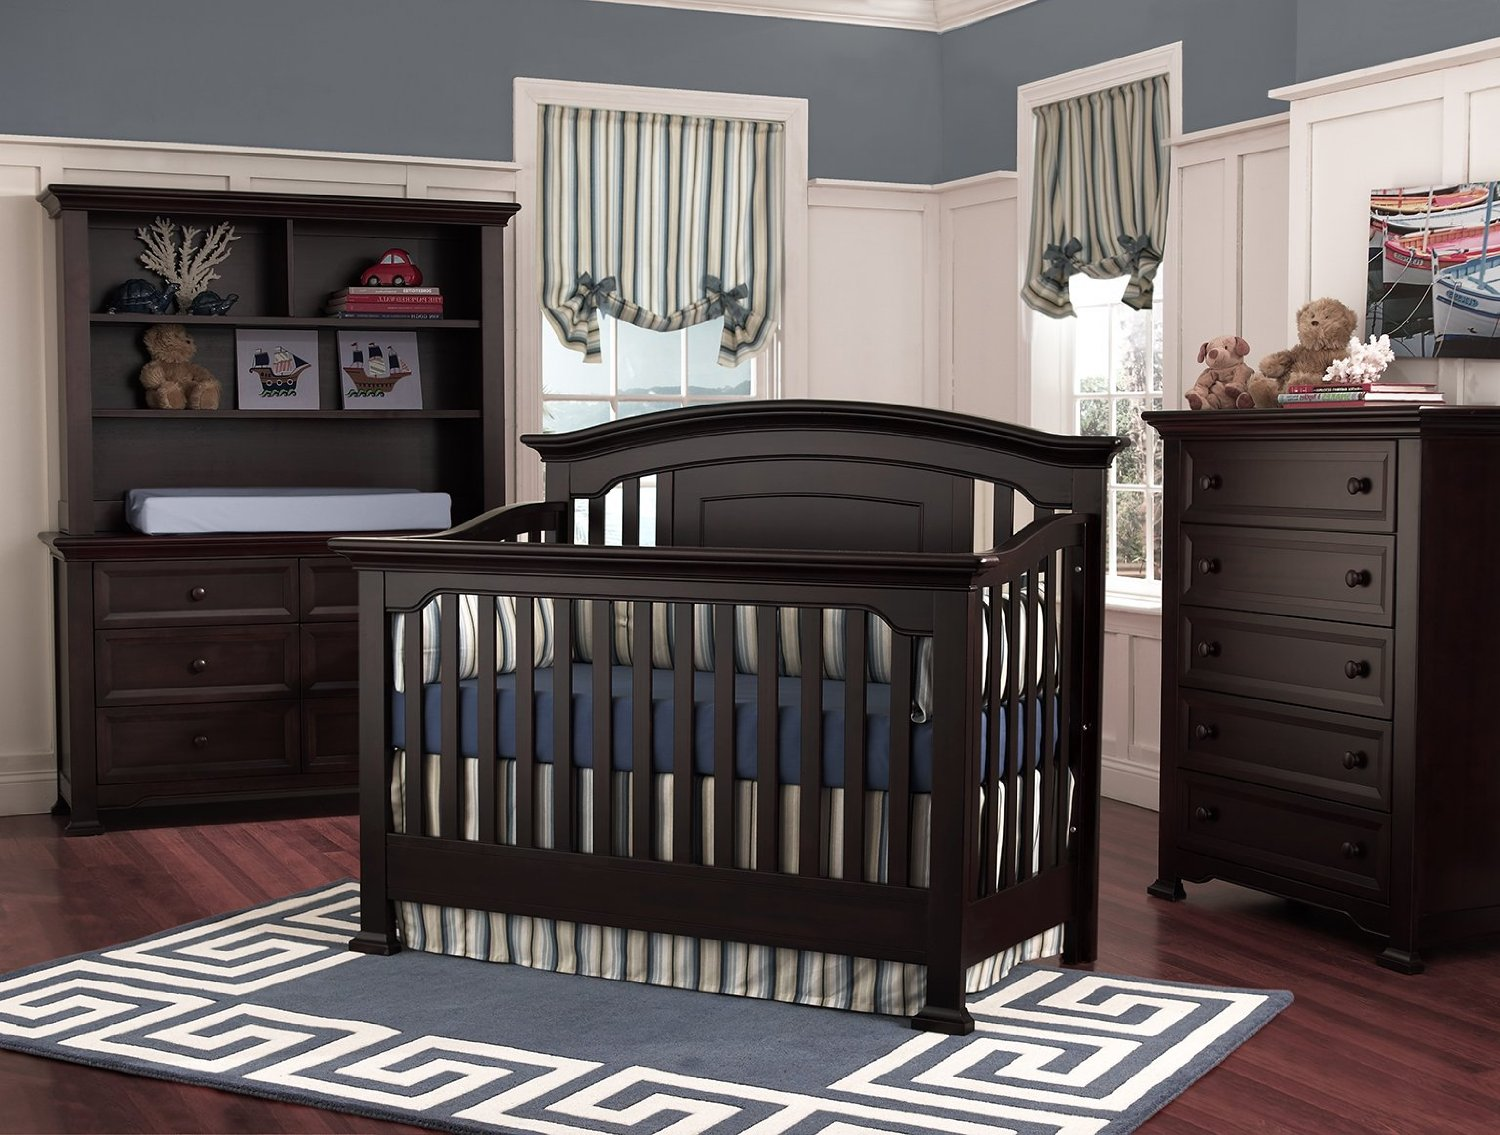 black wooden munire crib on wooden floor plus grey carpet matched with grey wall plus black wooden dresser for nursery decor ideas